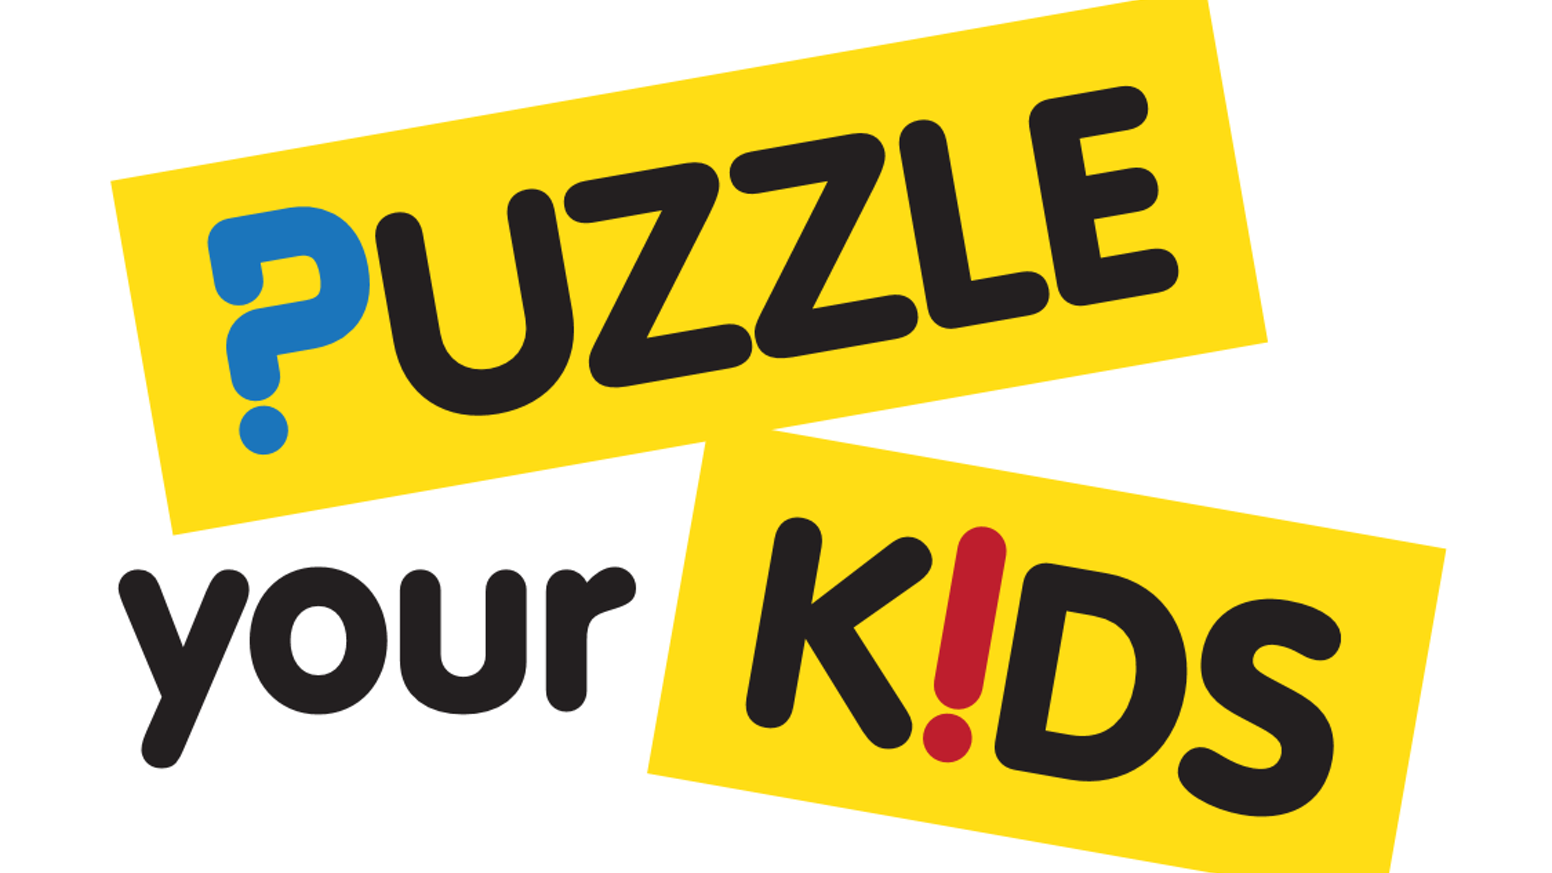 Amazing puzzles for kids 9 and up, delivered straight to your (or your child's) inbox.